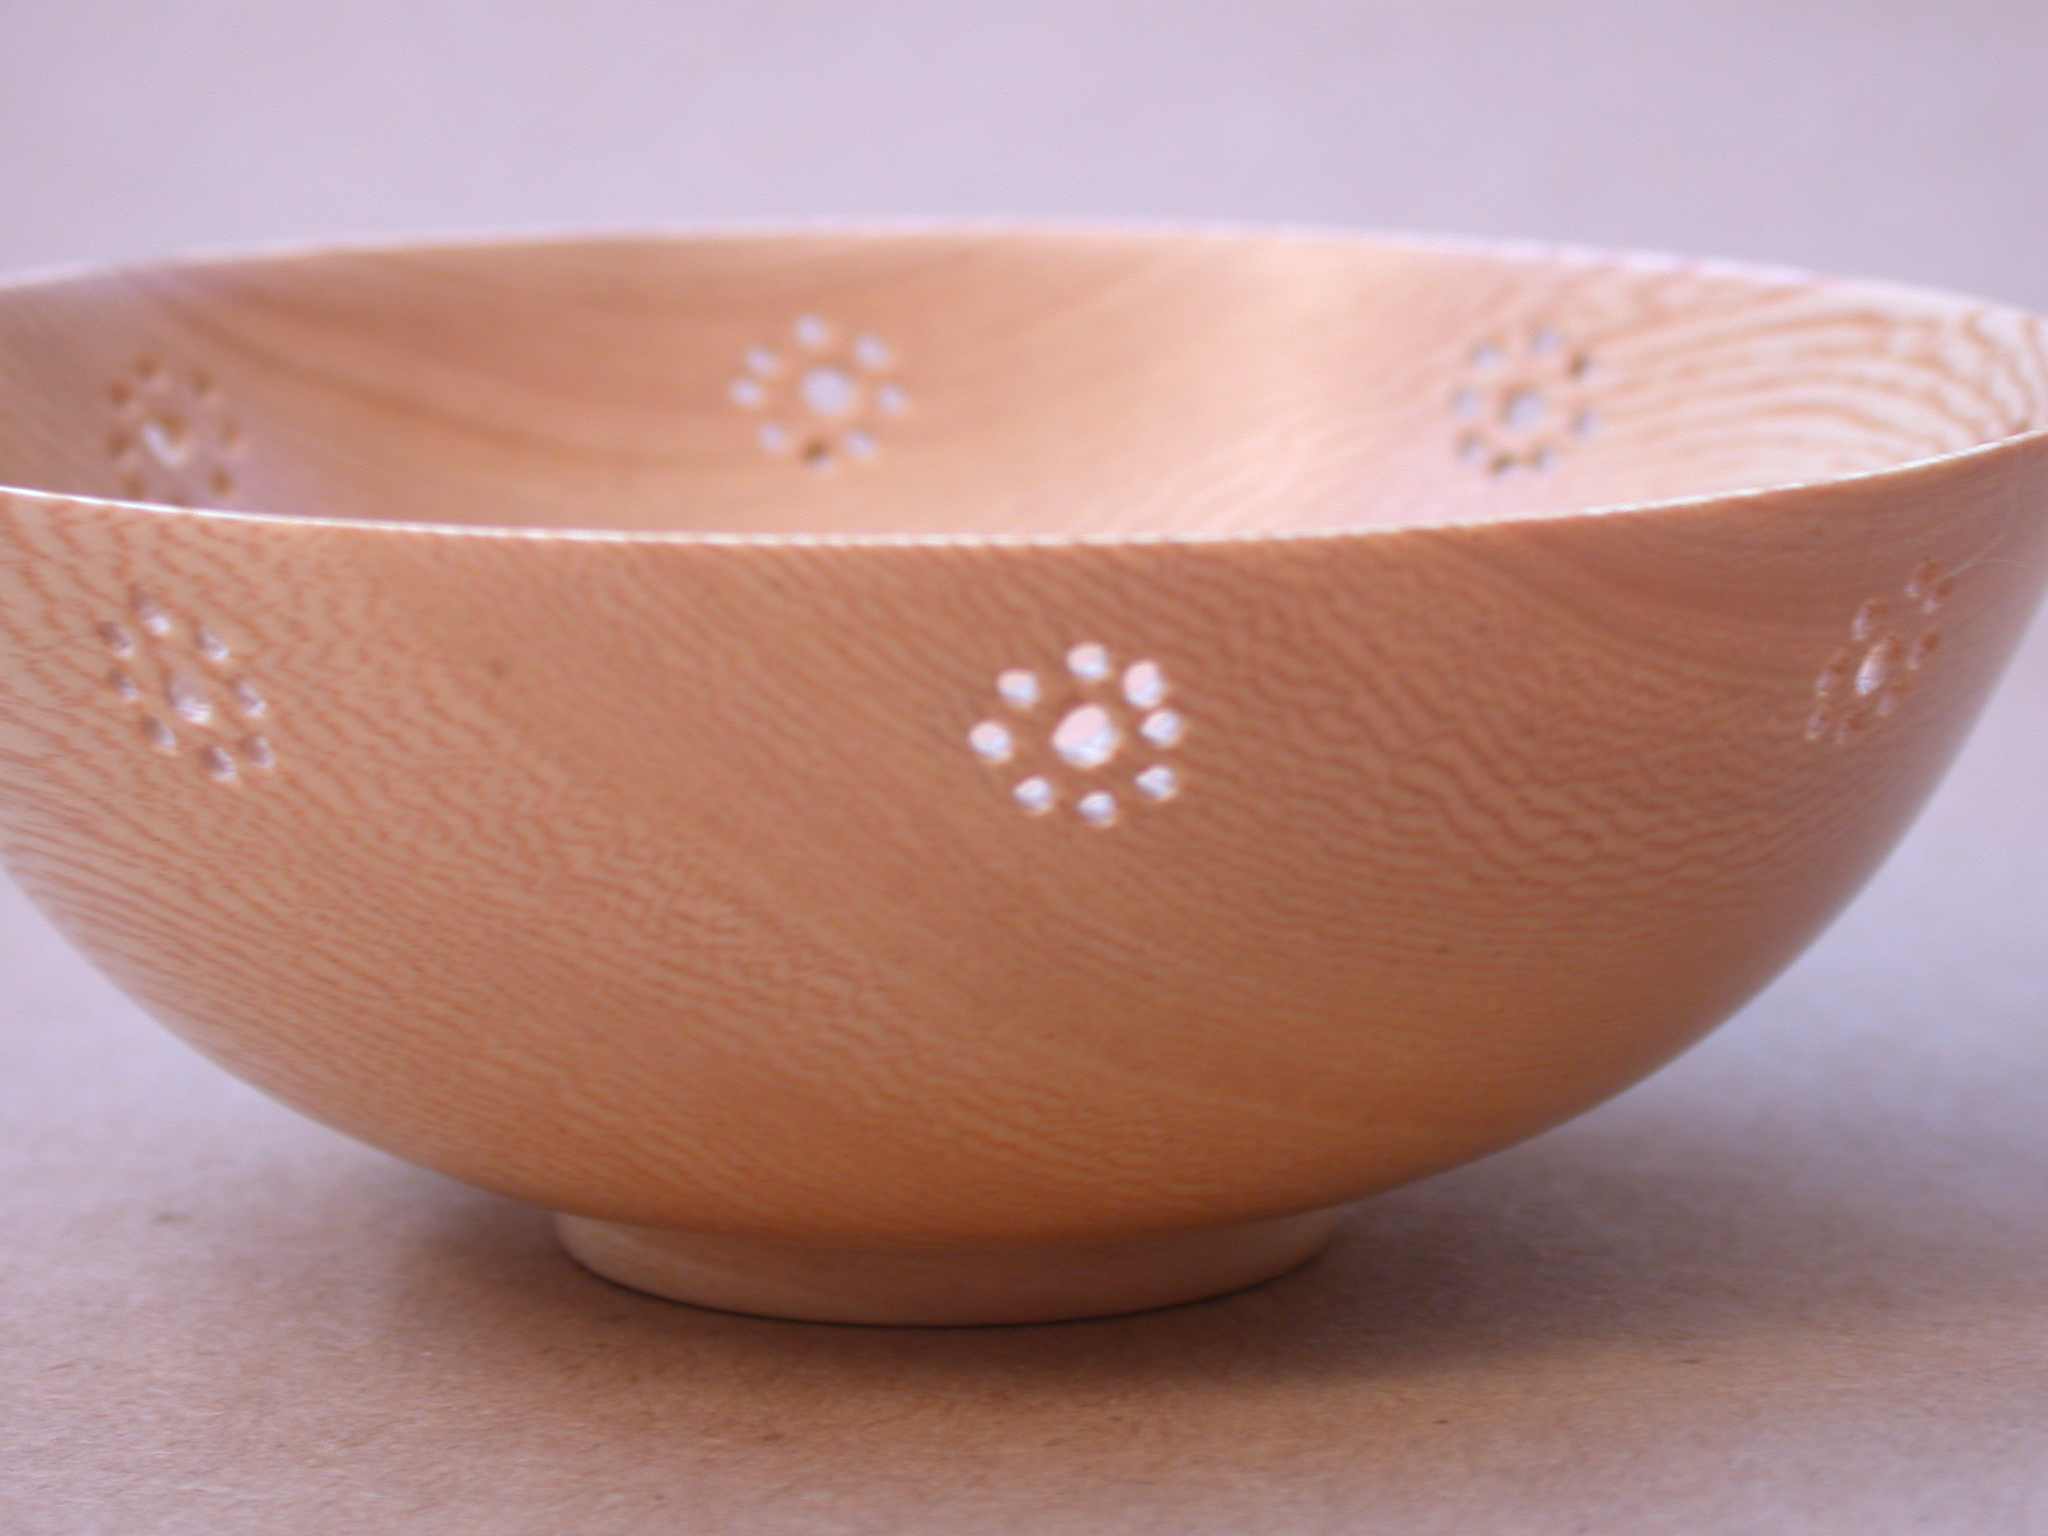 Turned bowl with flower pattern